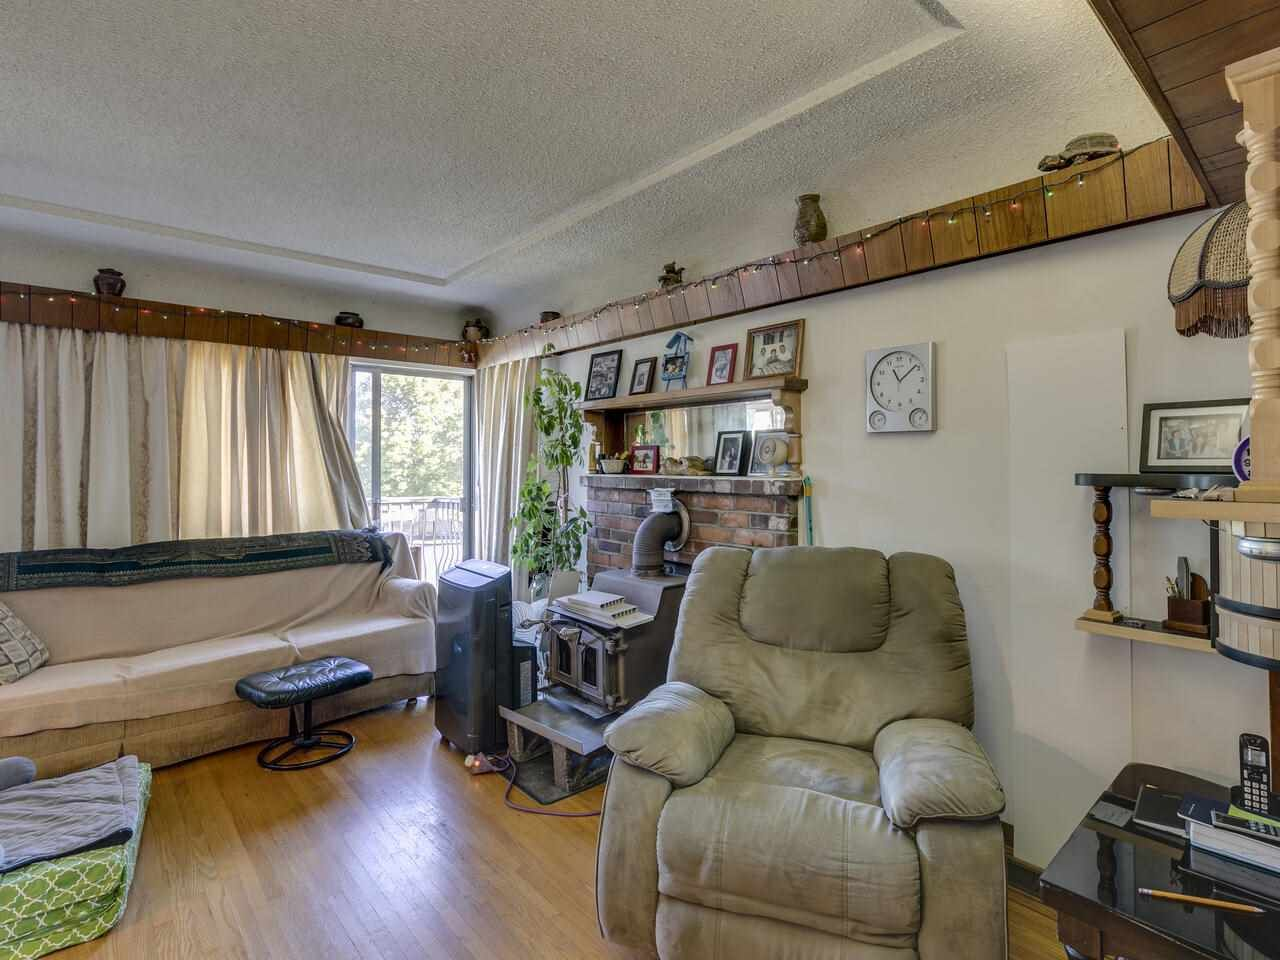 """Photo 14: Photos: 2796 E 4TH Avenue in Vancouver: Renfrew VE House for sale in """"Renfrew Heights"""" (Vancouver East)  : MLS®# R2496647"""